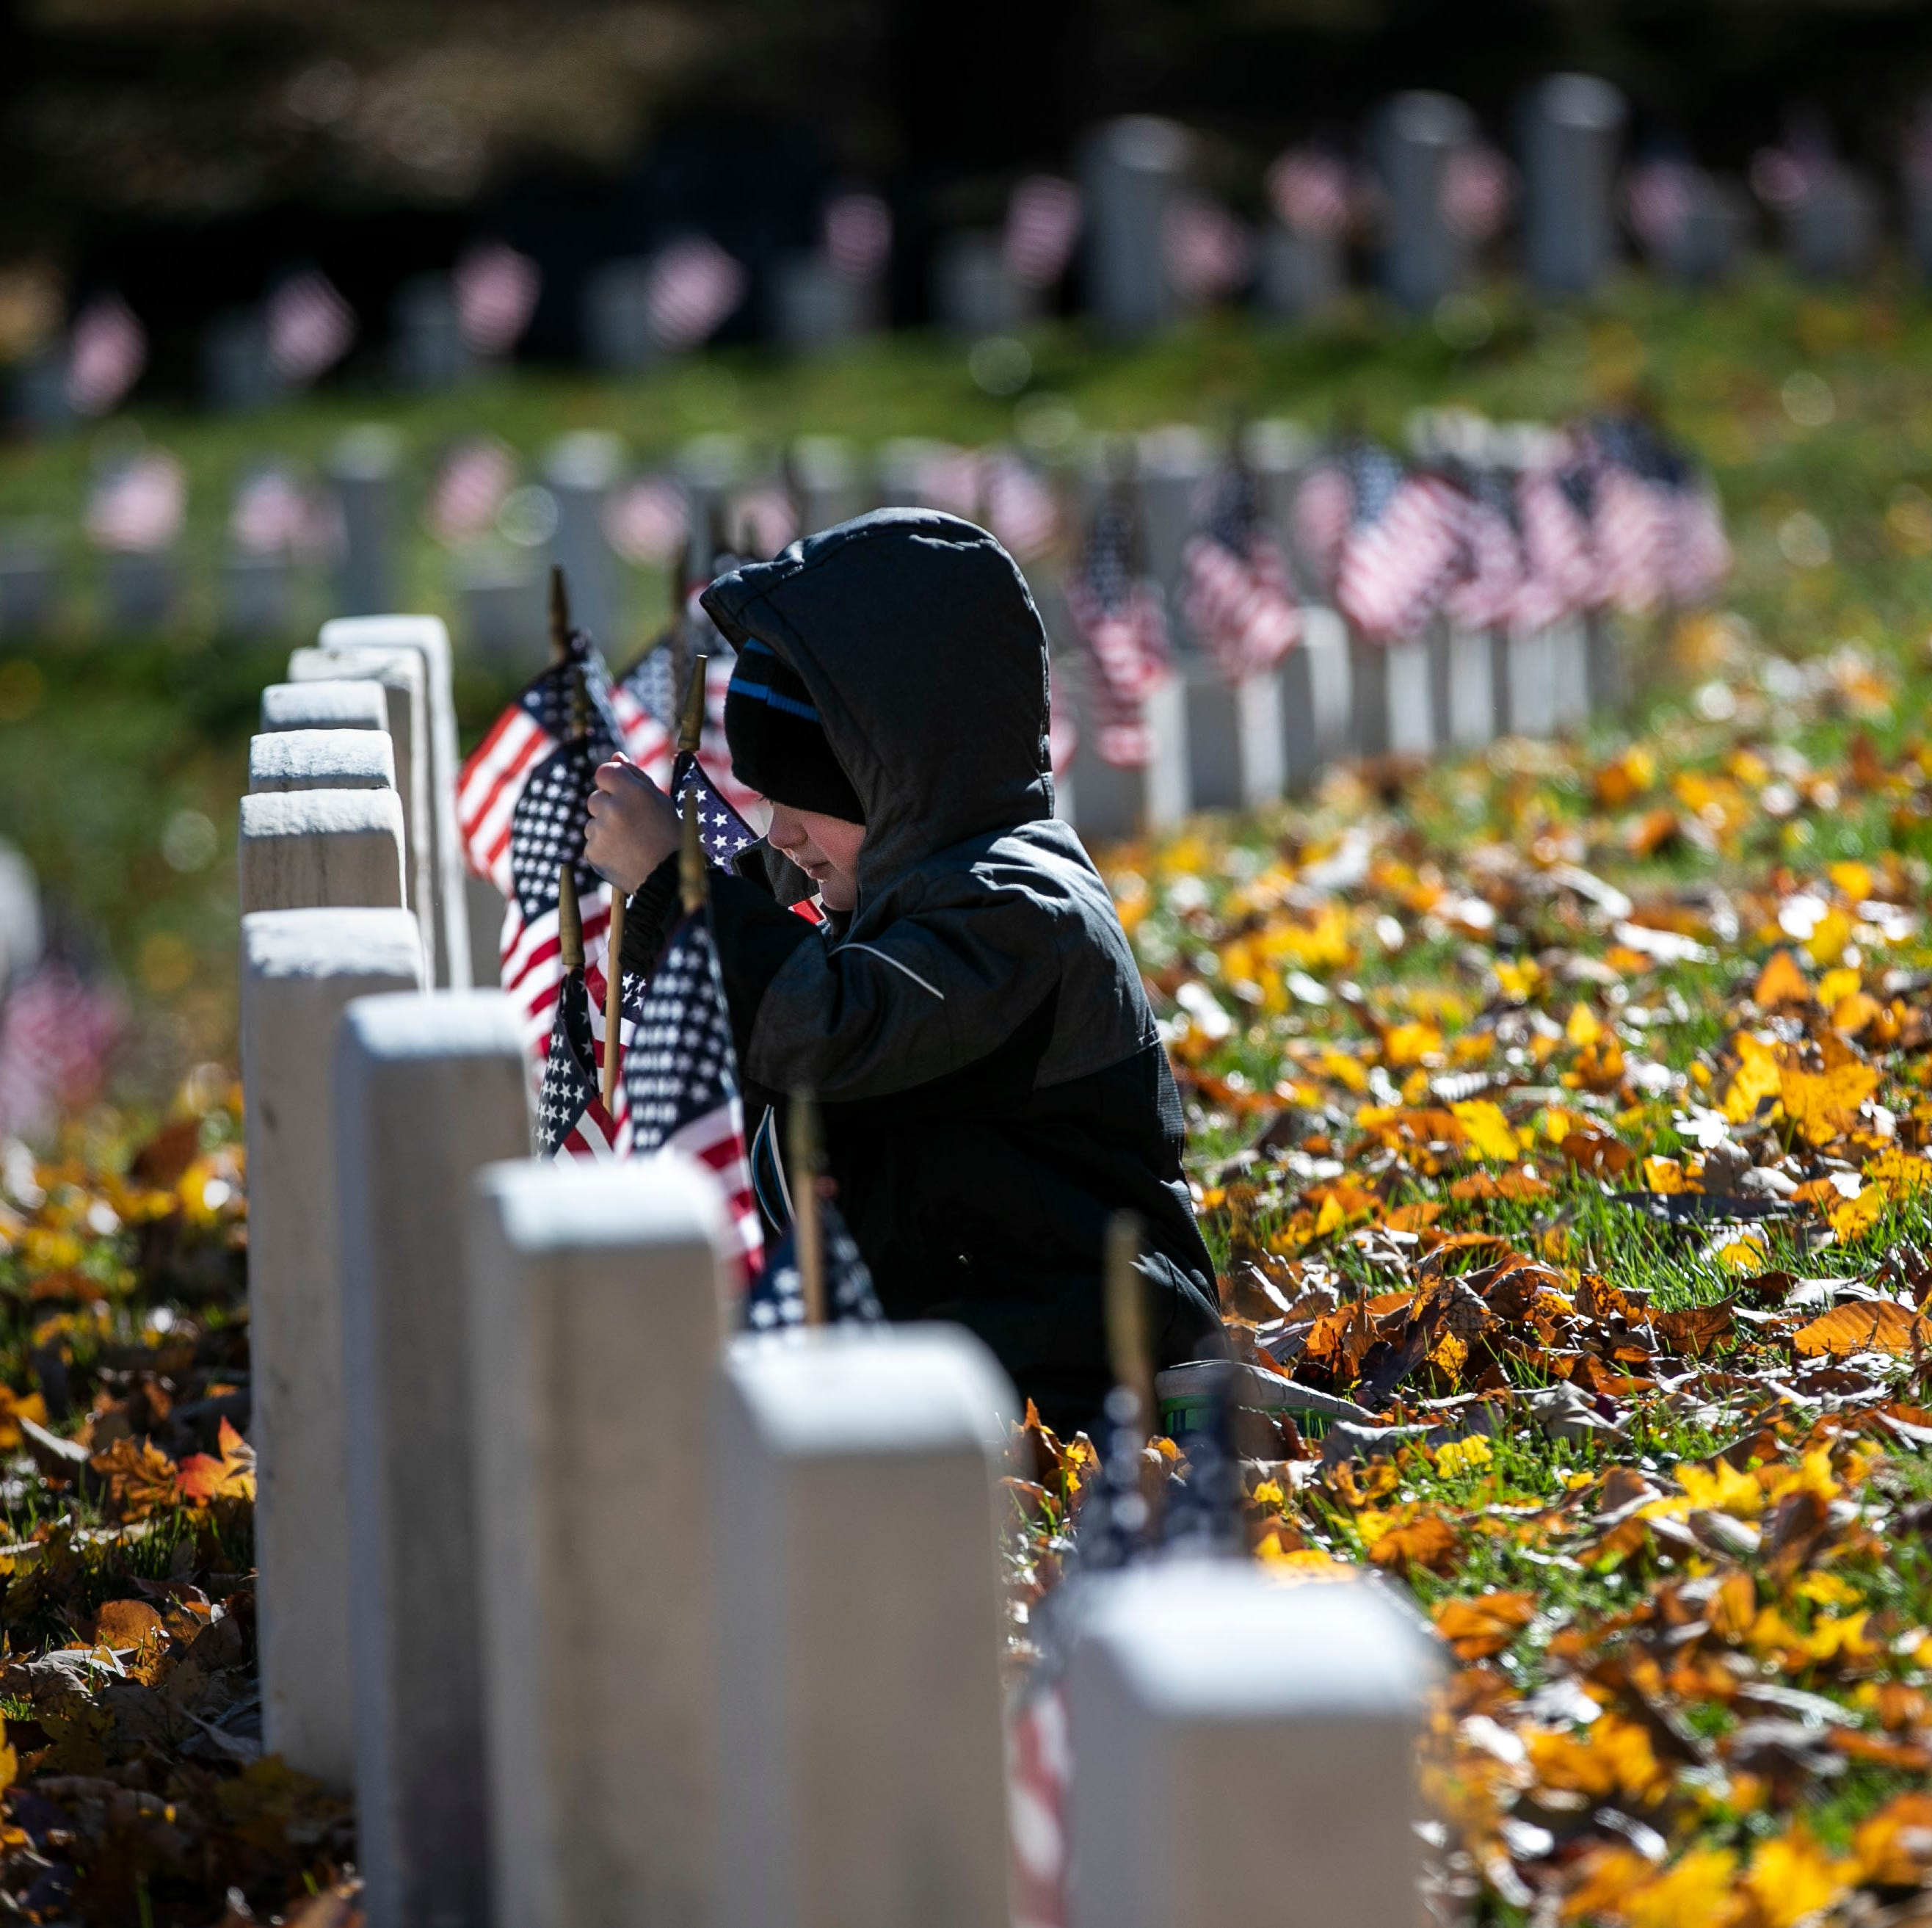 100 years after armistice, Veterans Day honors those who served